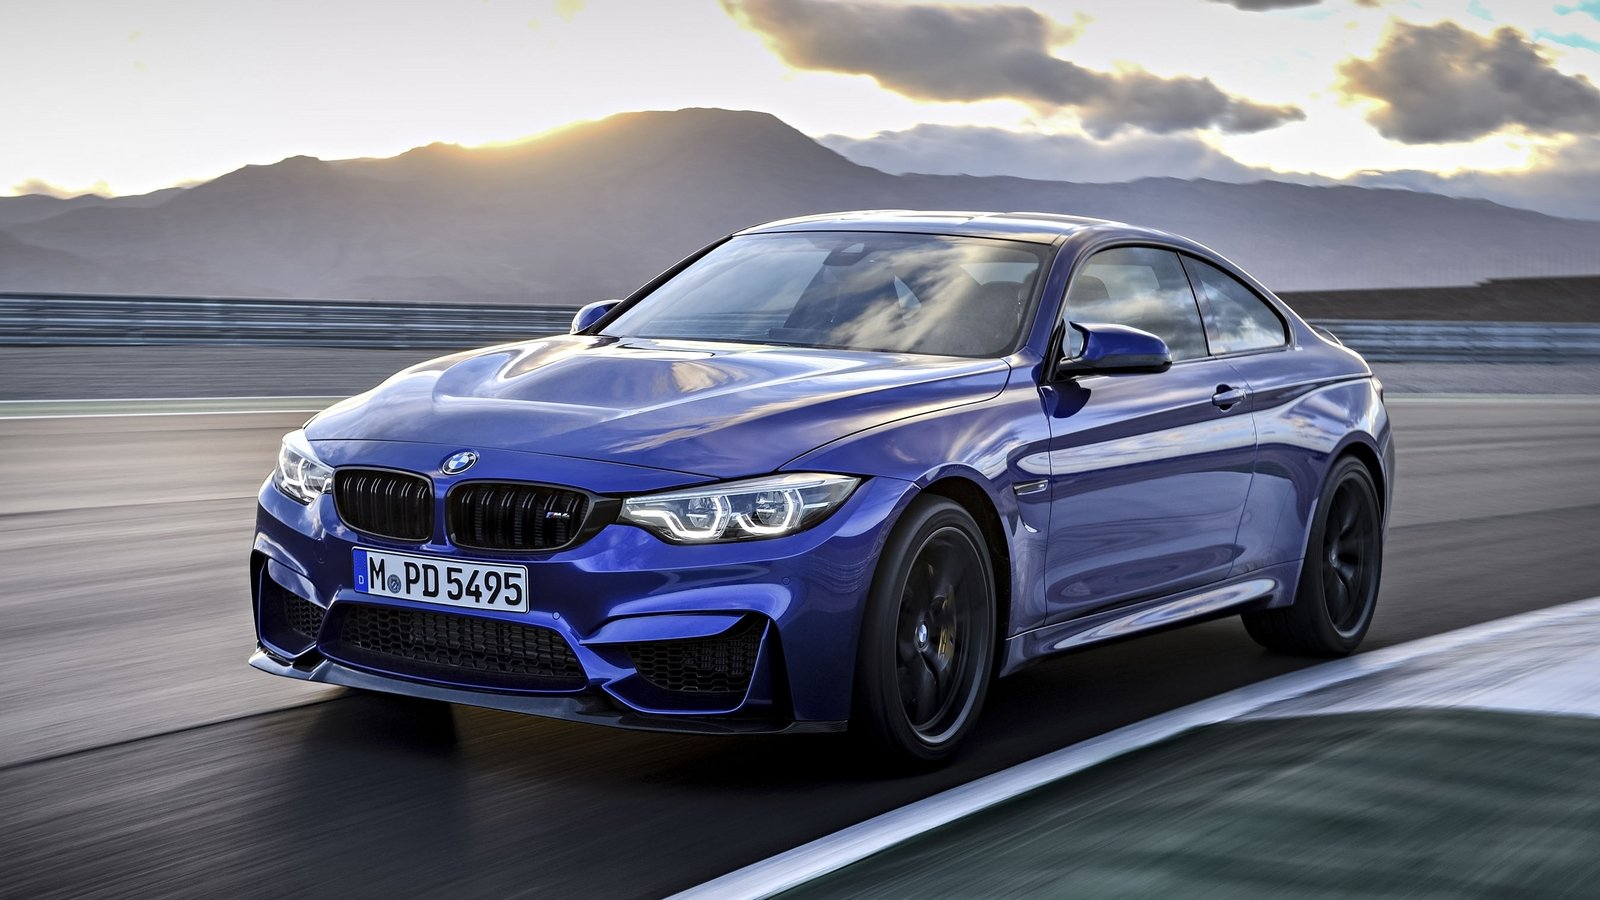 2018 BMW M4 CS Faster And More Light, Price?